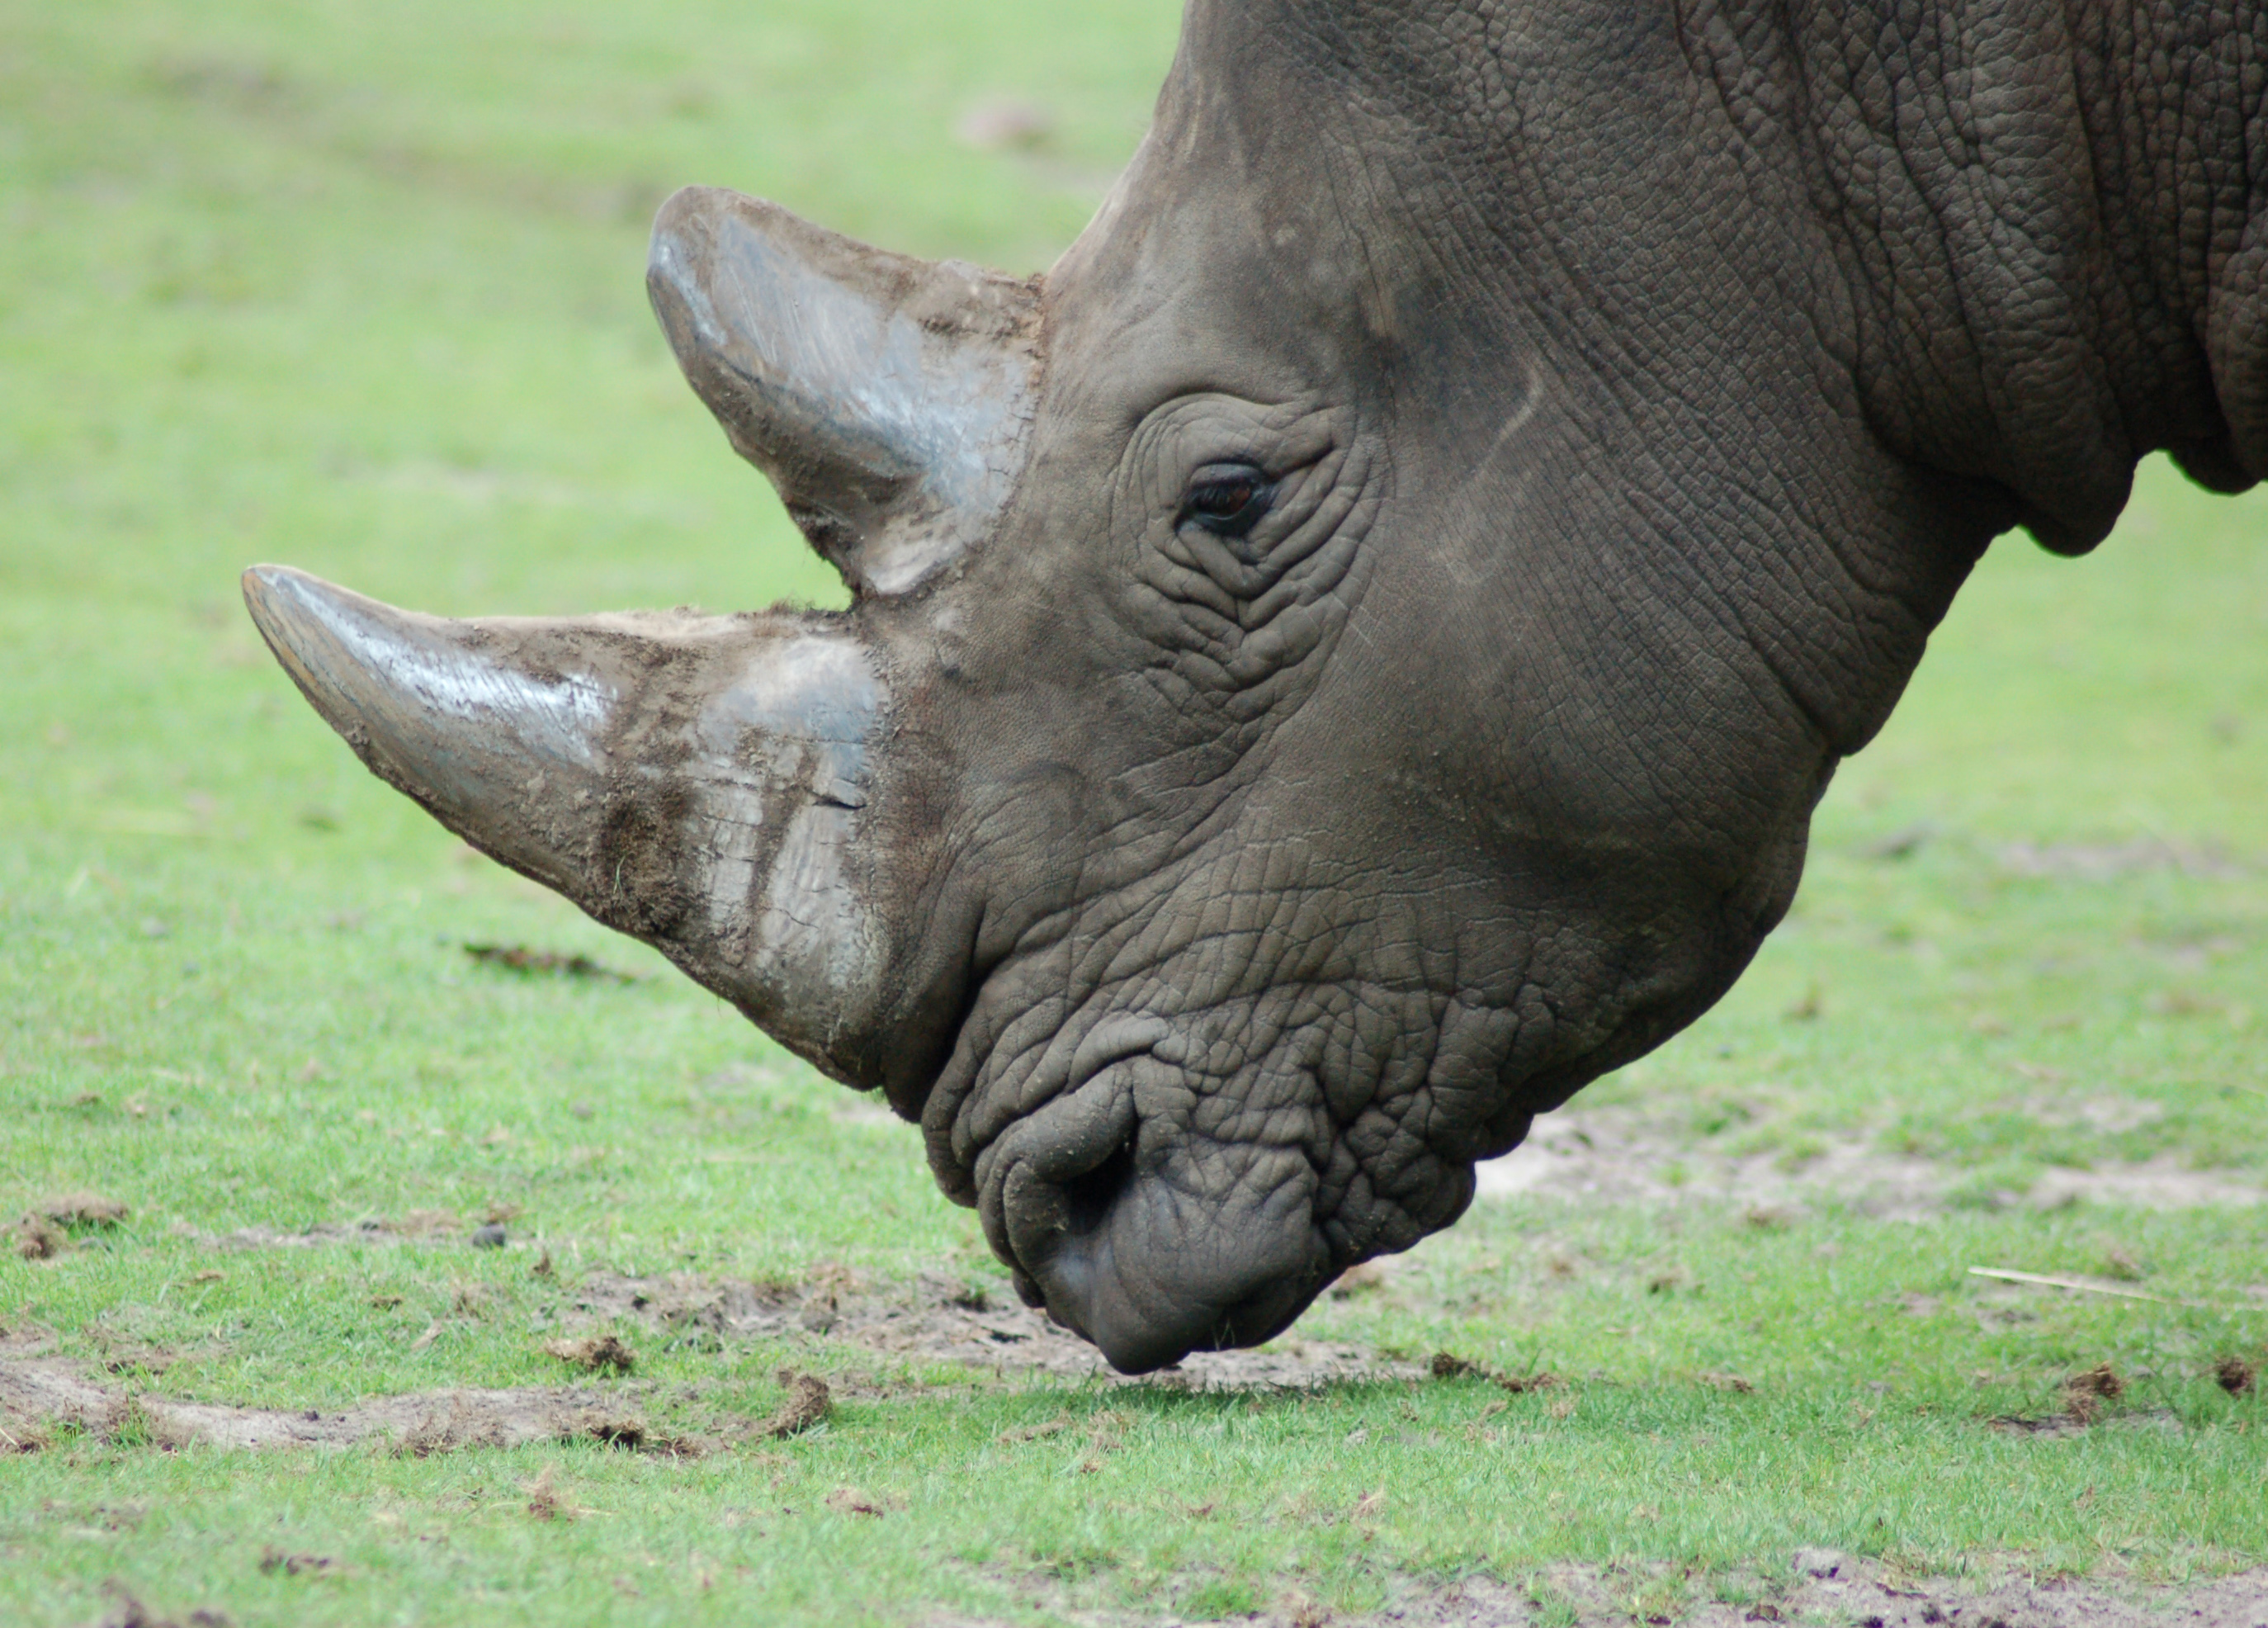 File:Rhinoceros (4872071091).jpg - Wikipedia